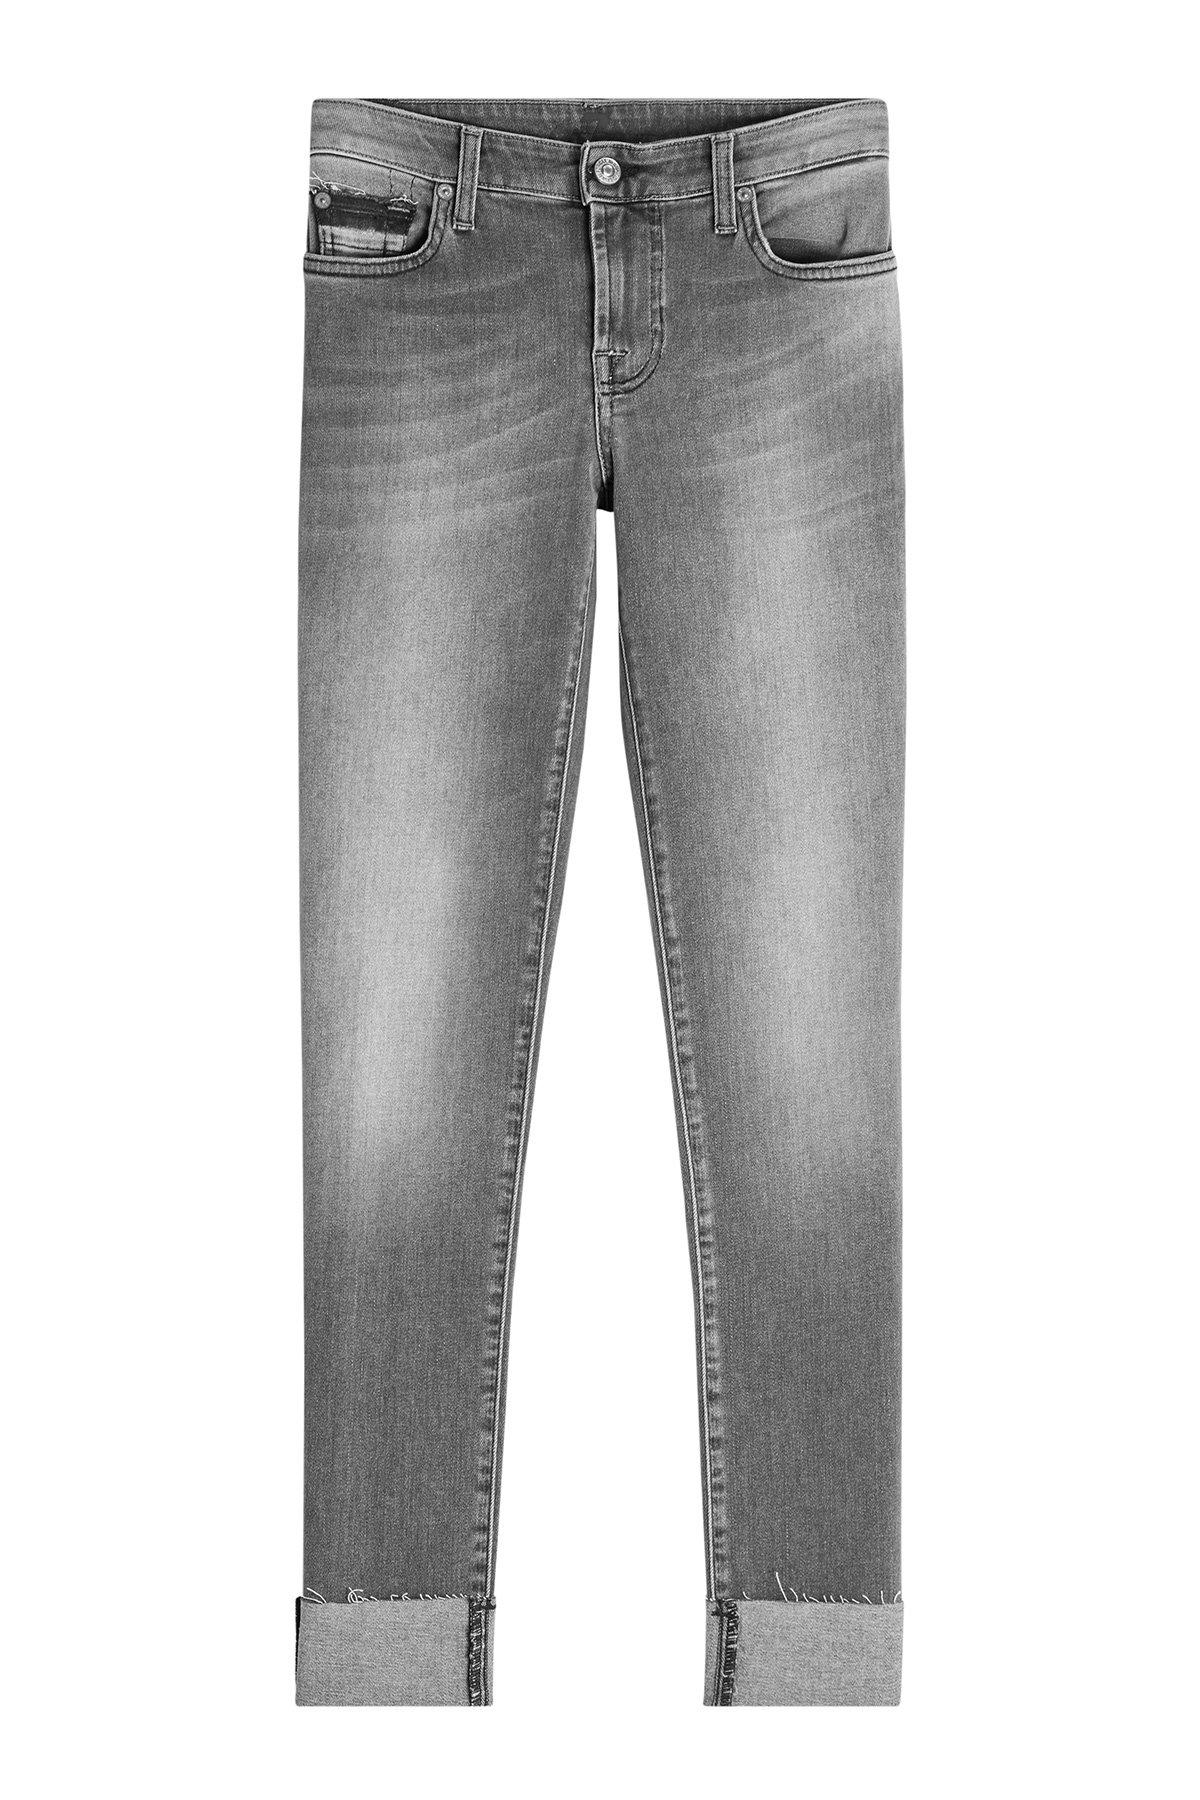 7 For All Mankind Pyper Skinny Jeans In Grey